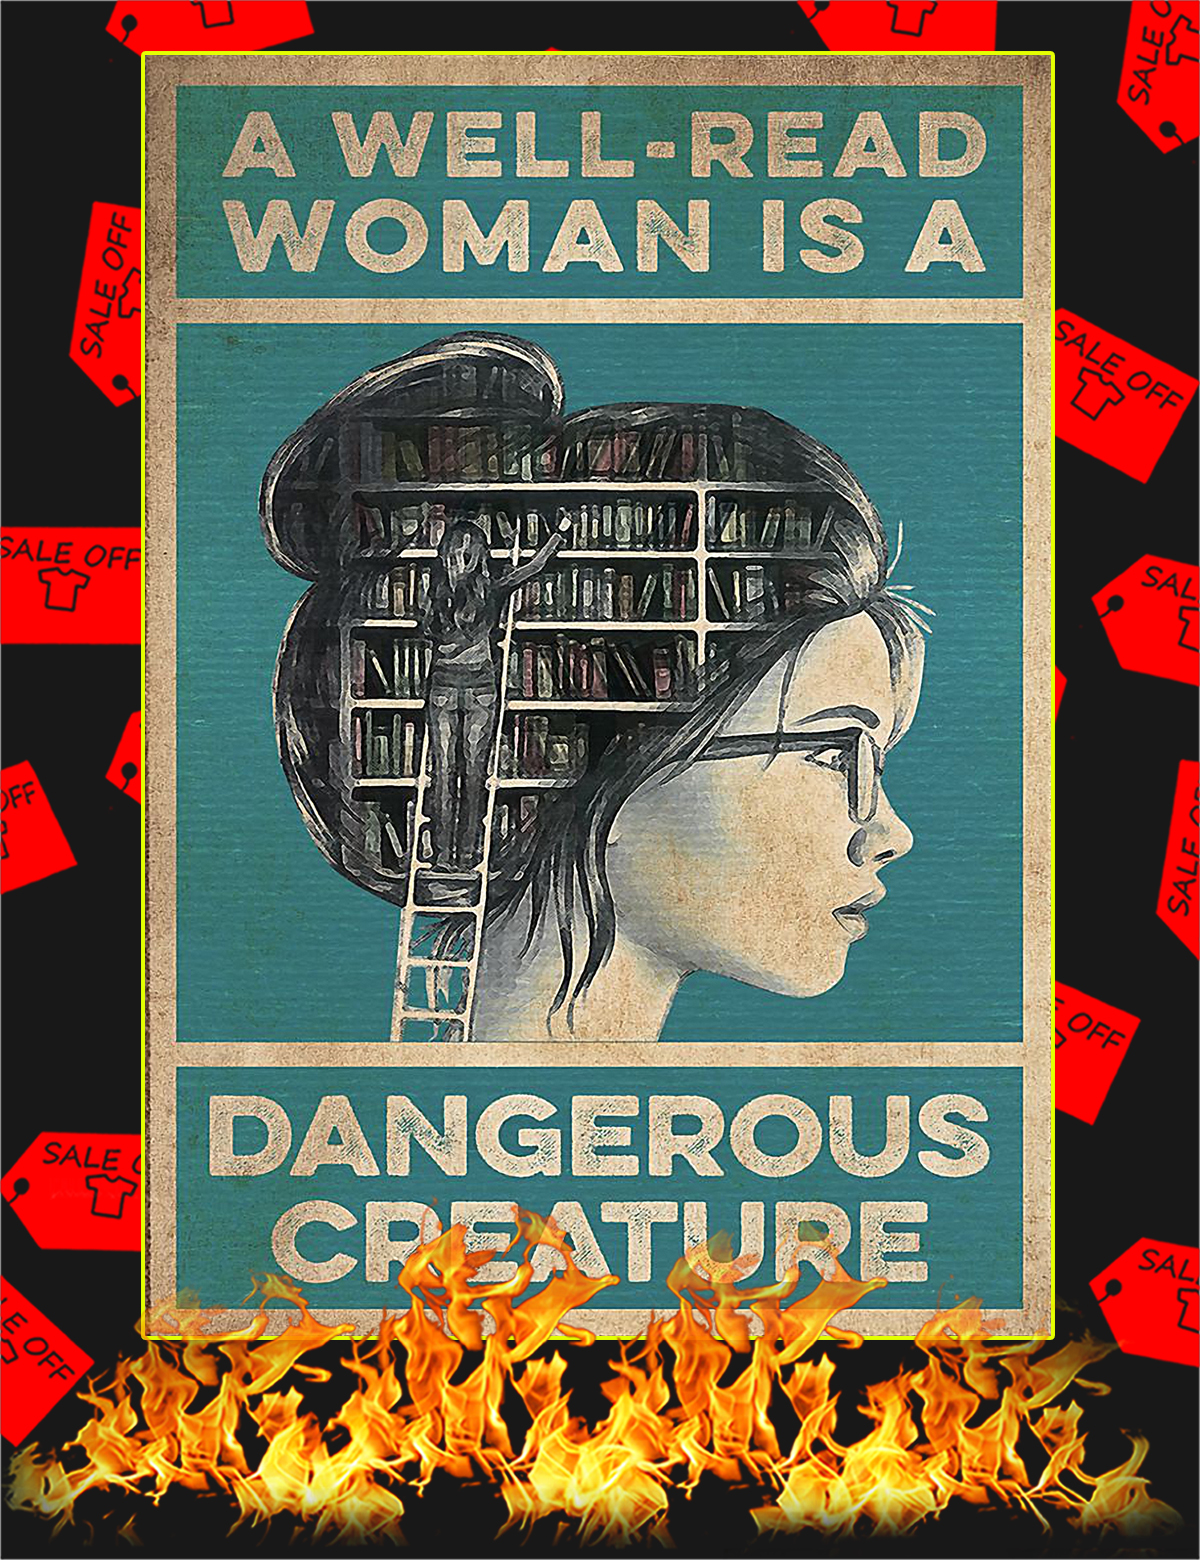 A well-read woman is a dangerous creature poster - A4